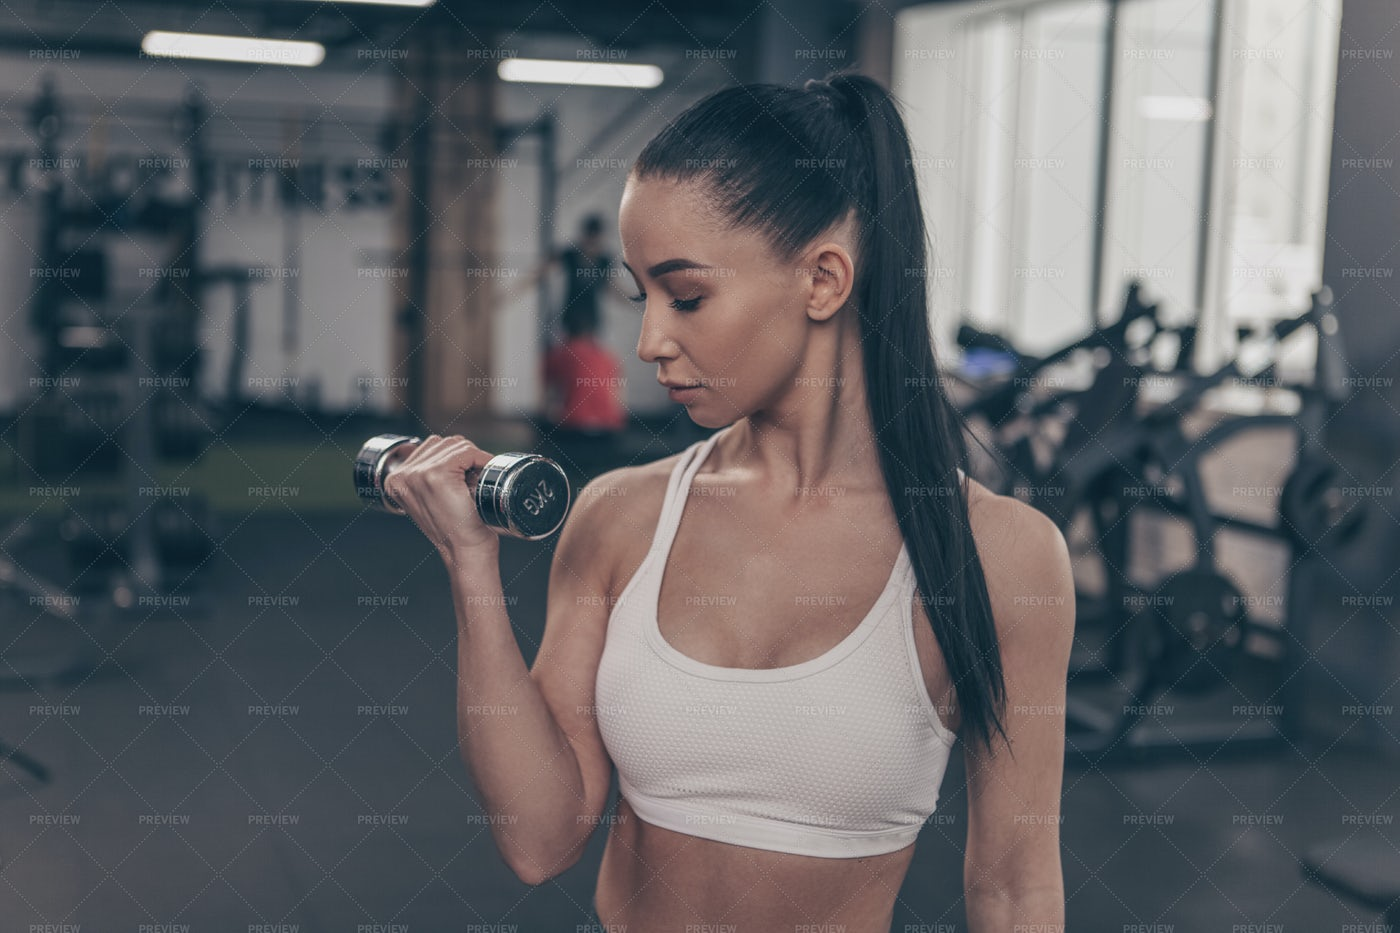 Performing Dumbbell Curls: Stock Photos